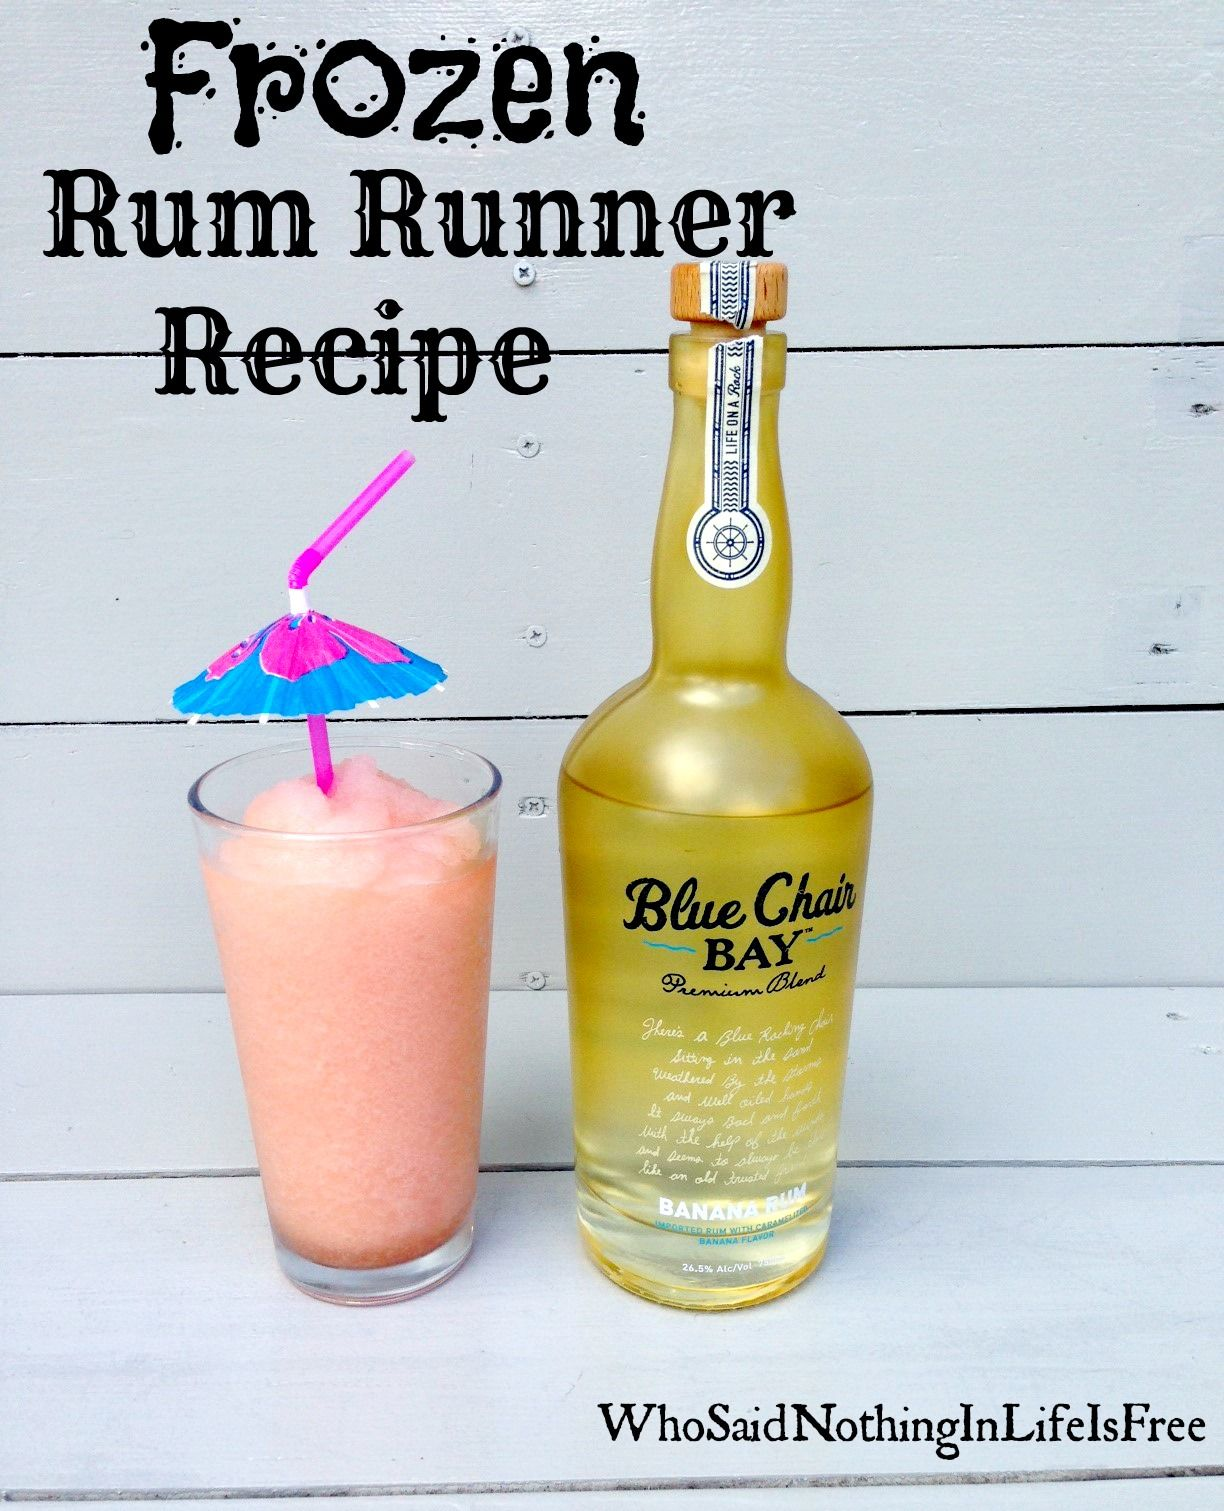 Blue Chair Bay Coconut Rum Frozen Rum Runner Cocktail Made With Blue Chair Bay Banana